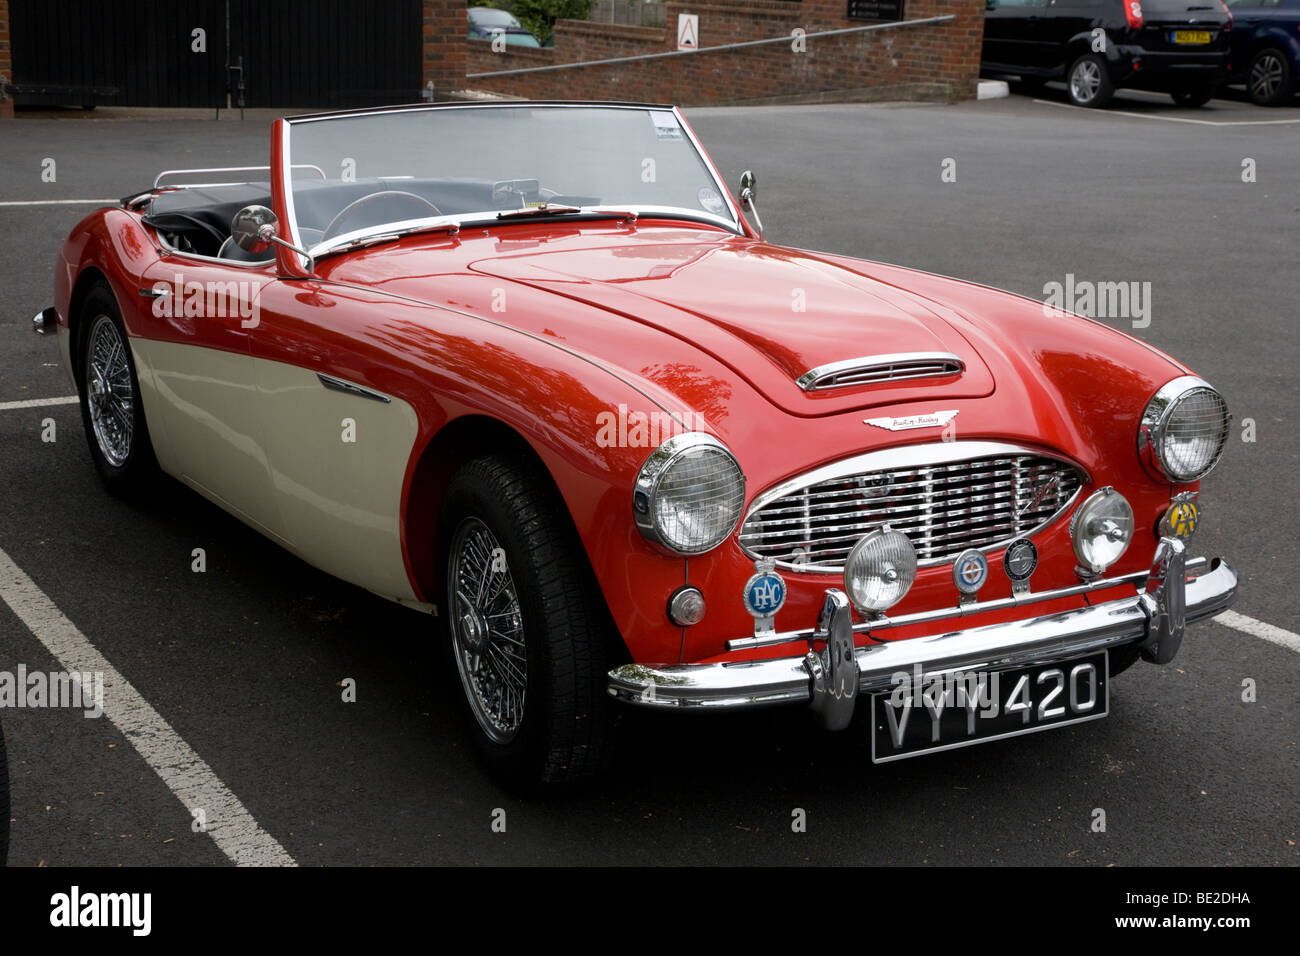 Austin Healey 3000 Stockbild